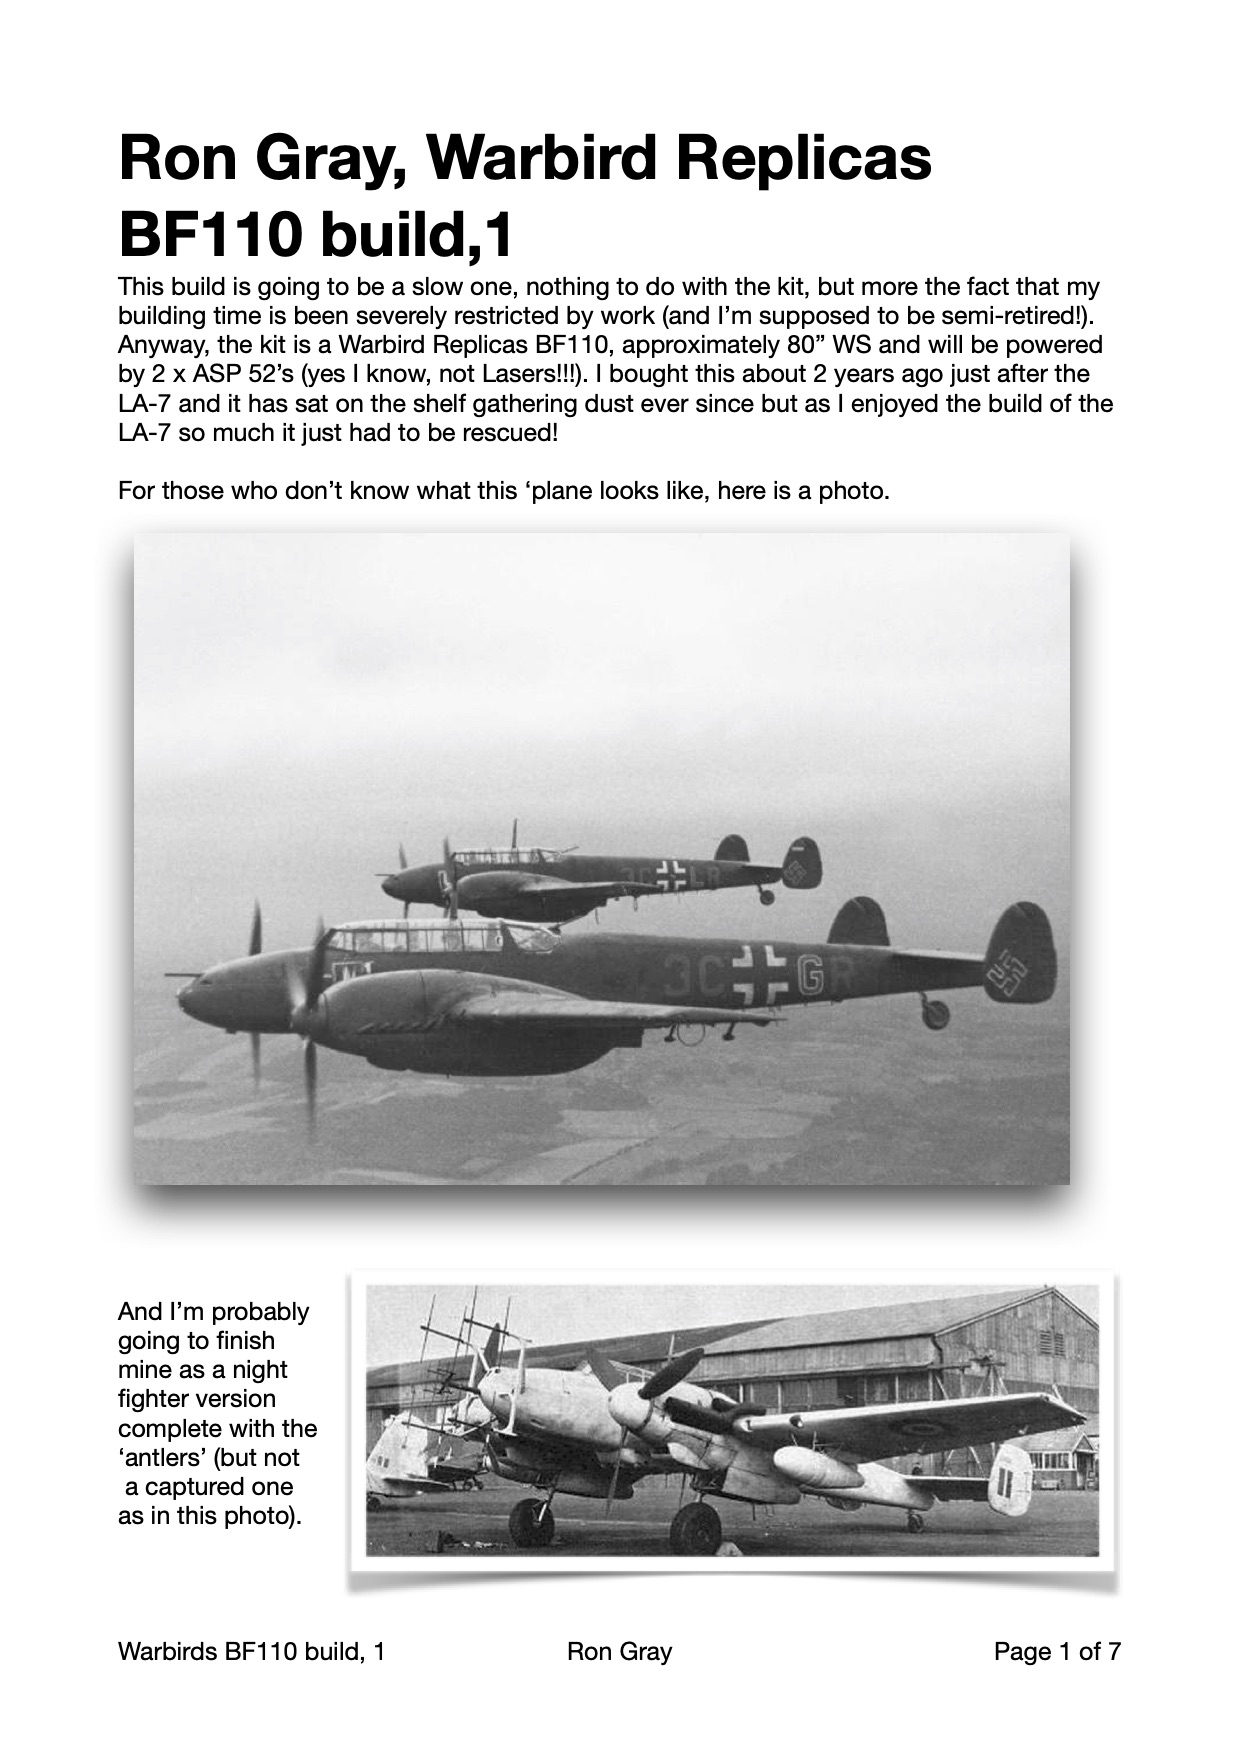 Ron Gray, Warbird Replicas BF110, part 1